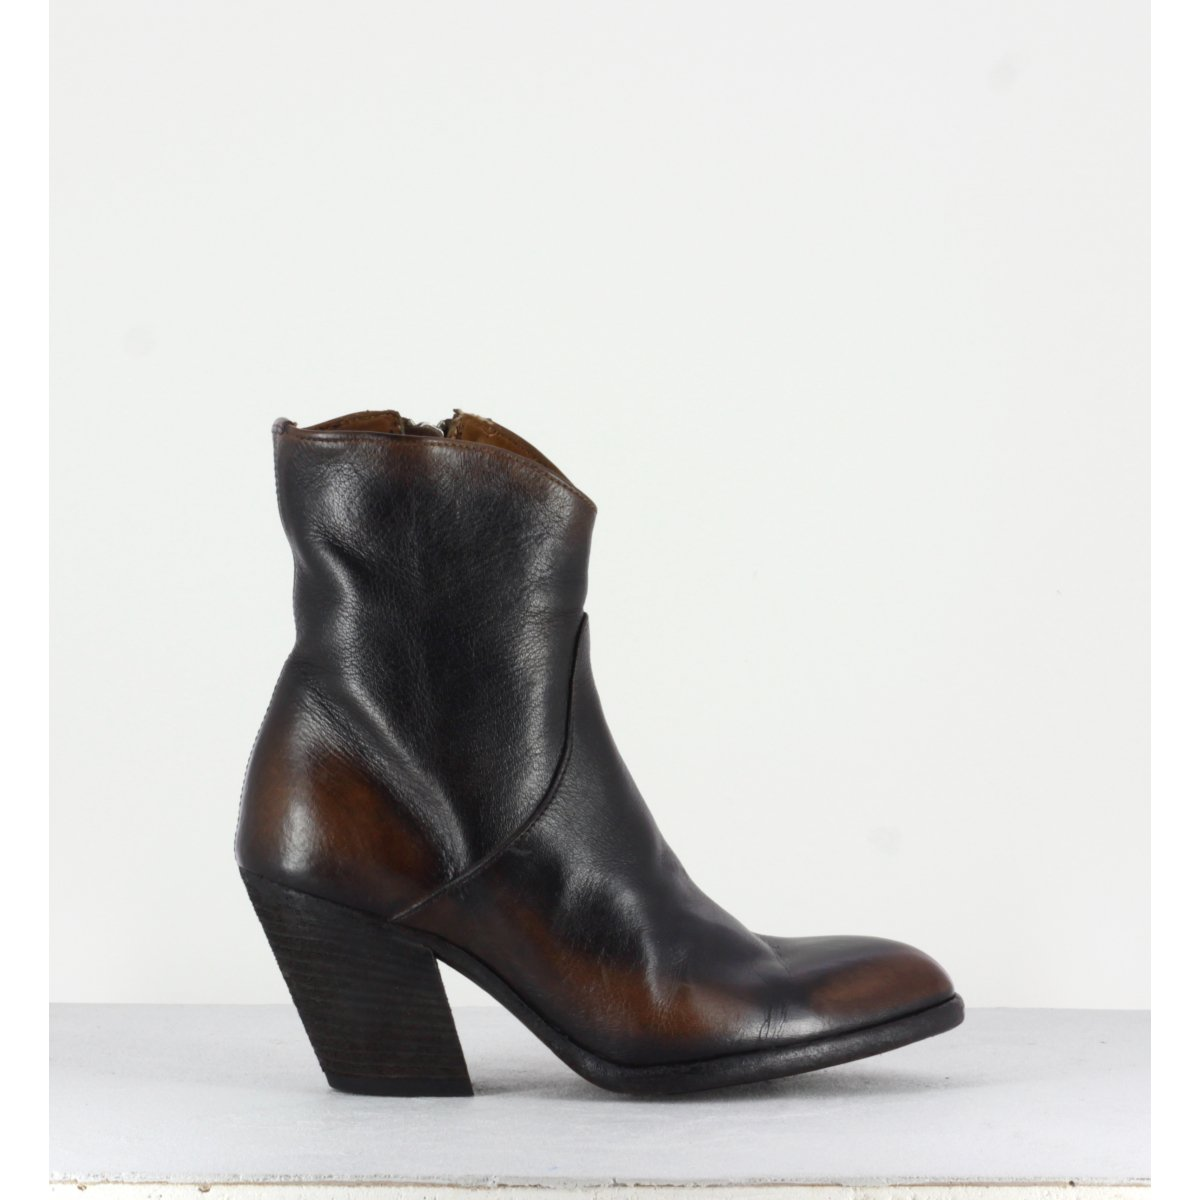 Bottines à talon en cuir tie and die marron Officine Creative  - DERNIERE 001